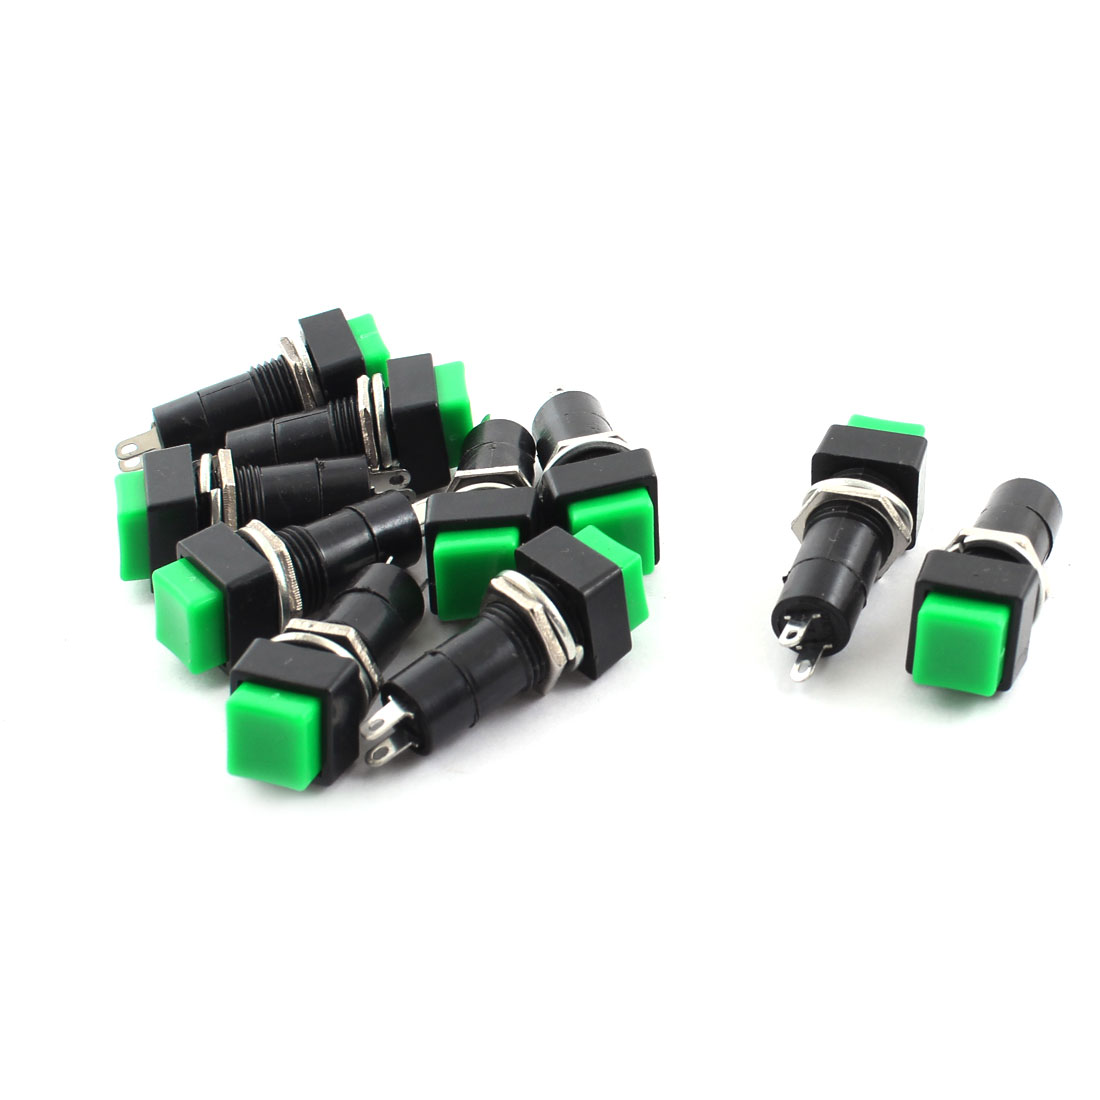 10Pcs AC250V 3A Green Rectangle Cap Momentary Push Button SPST Horn Switch